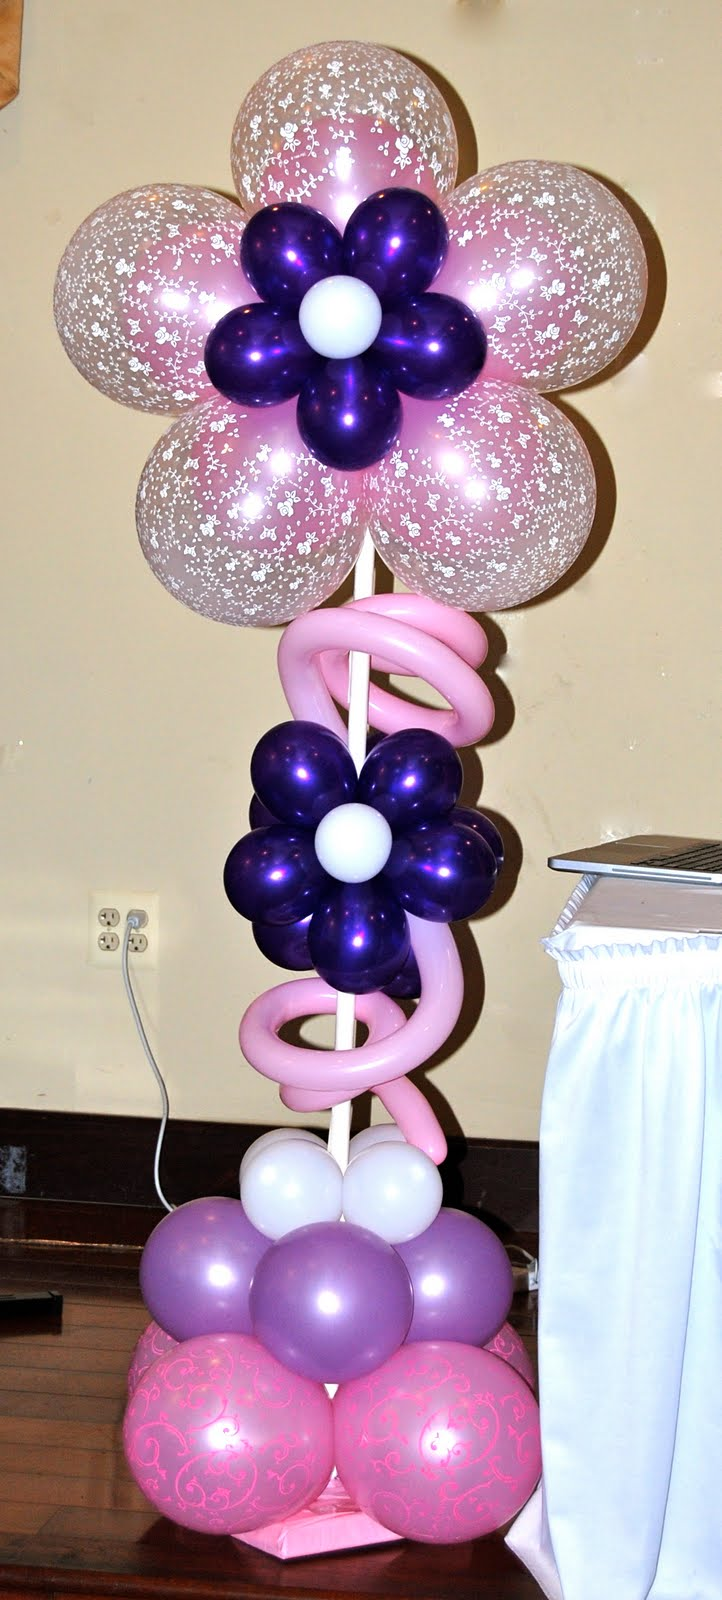 Korean 1st birthday dol decorations balloon decor for Balloon decoration for 1st birthday